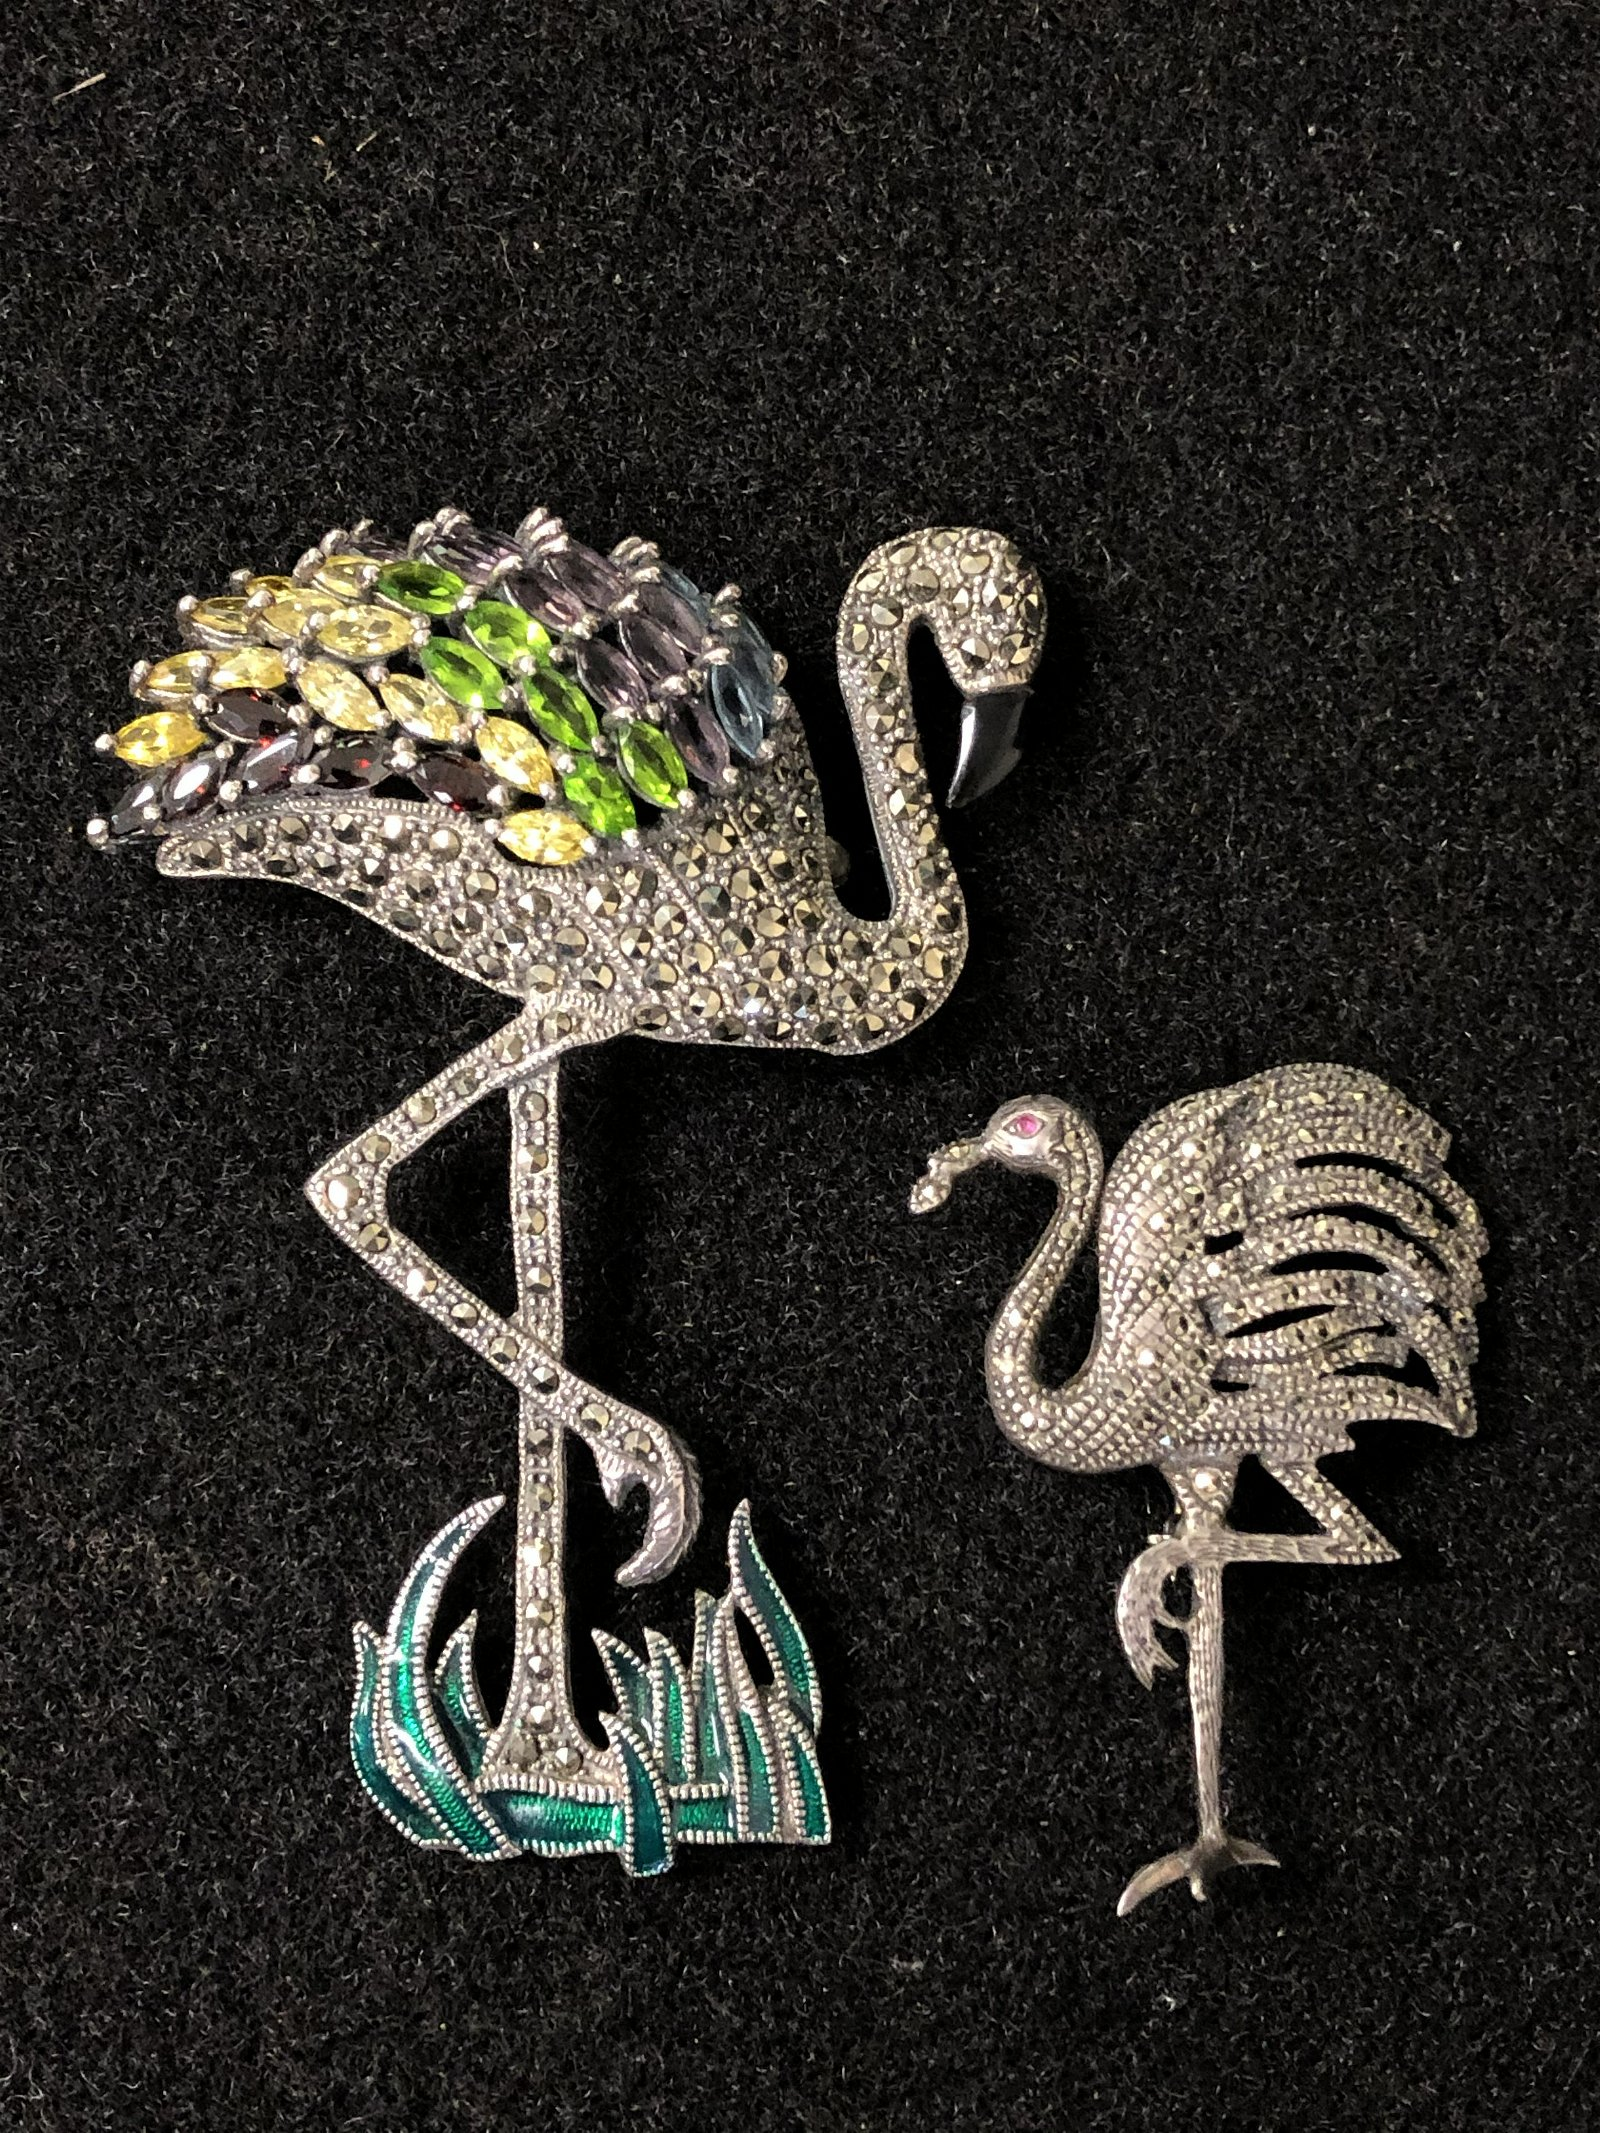 2 Marcasite Sterling Ostrich Brooches - 1 w/ Enamel &